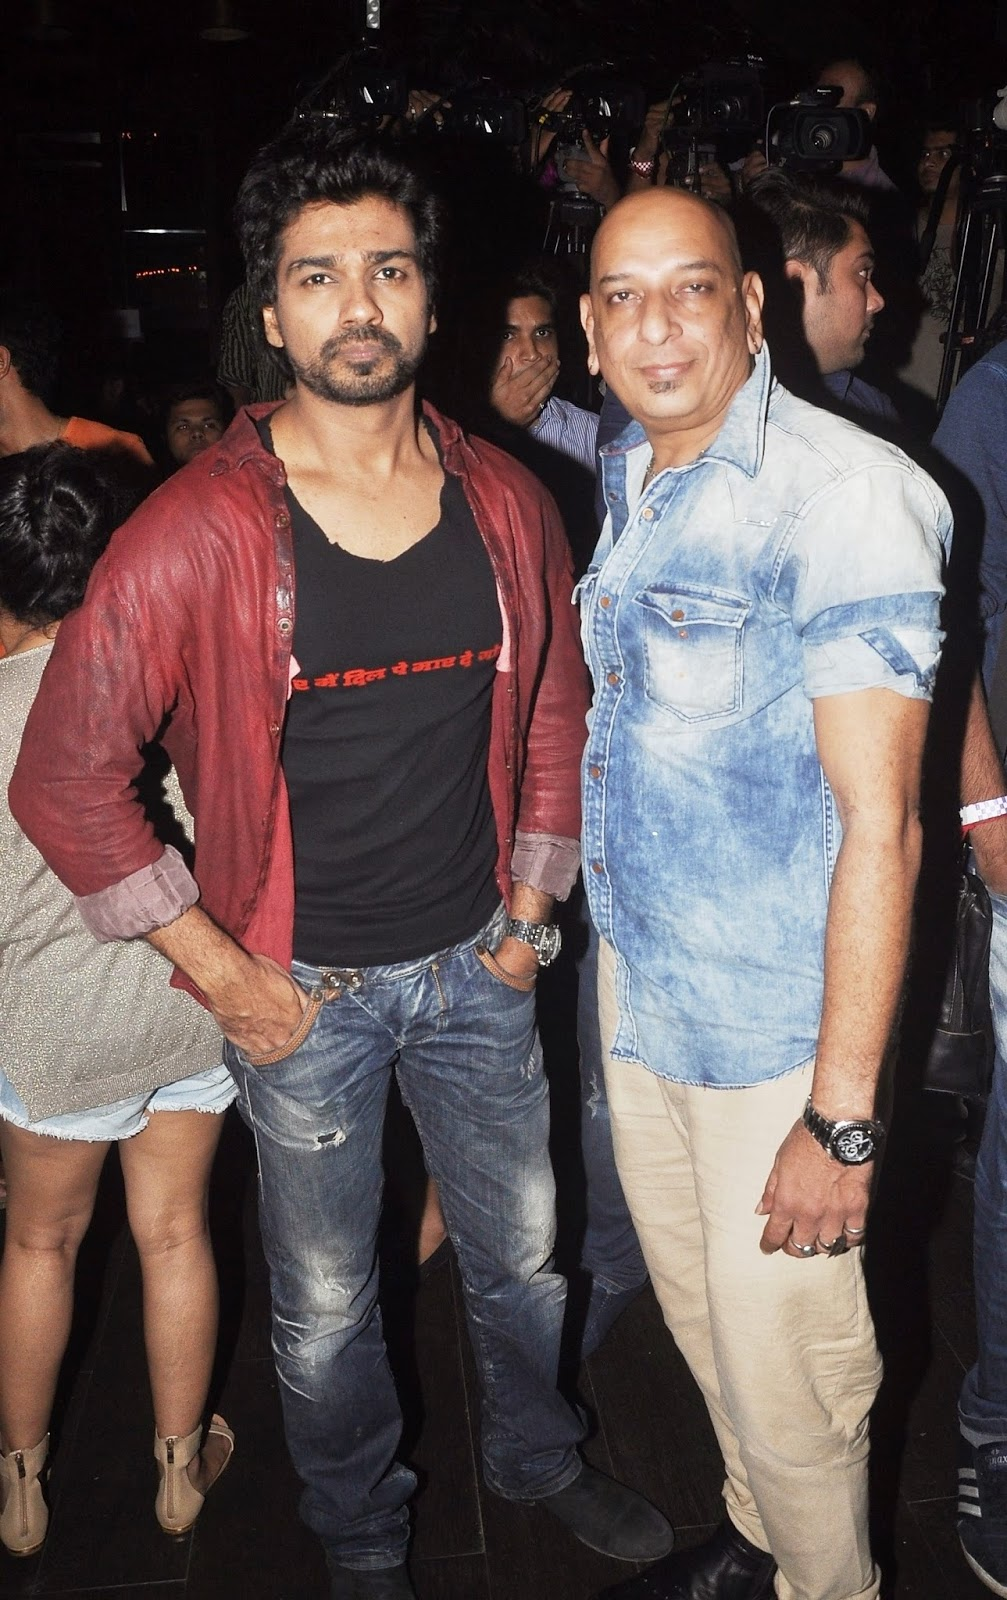 Nikhil Dwivedi and ace designer Salim Asharally at the Tamachey event